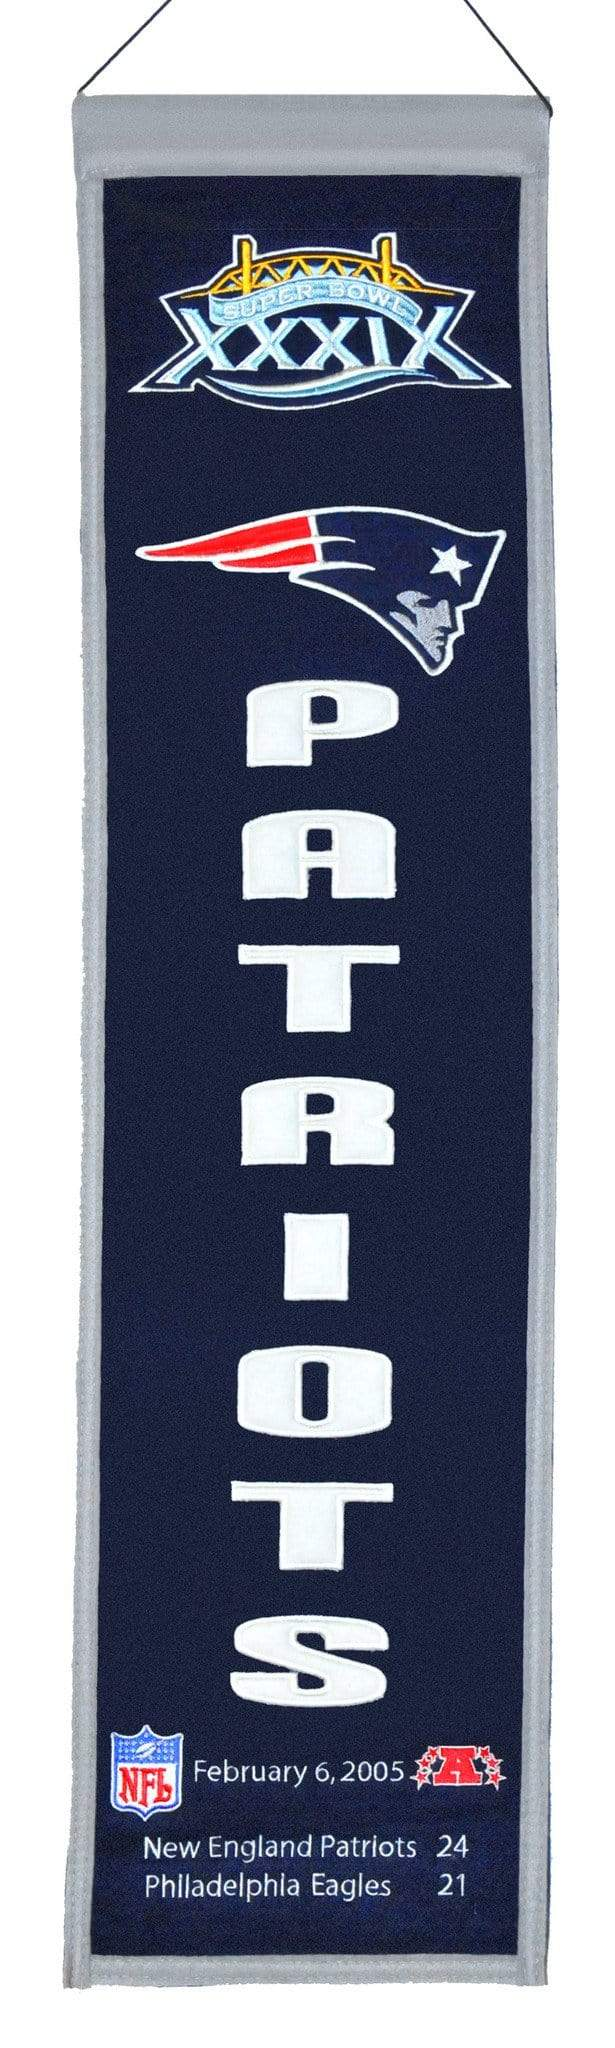 Winning Streak Sports Banners ONE SIZE Super Bowl 39 New England Patriots 8x32 Wool Heritage Banner